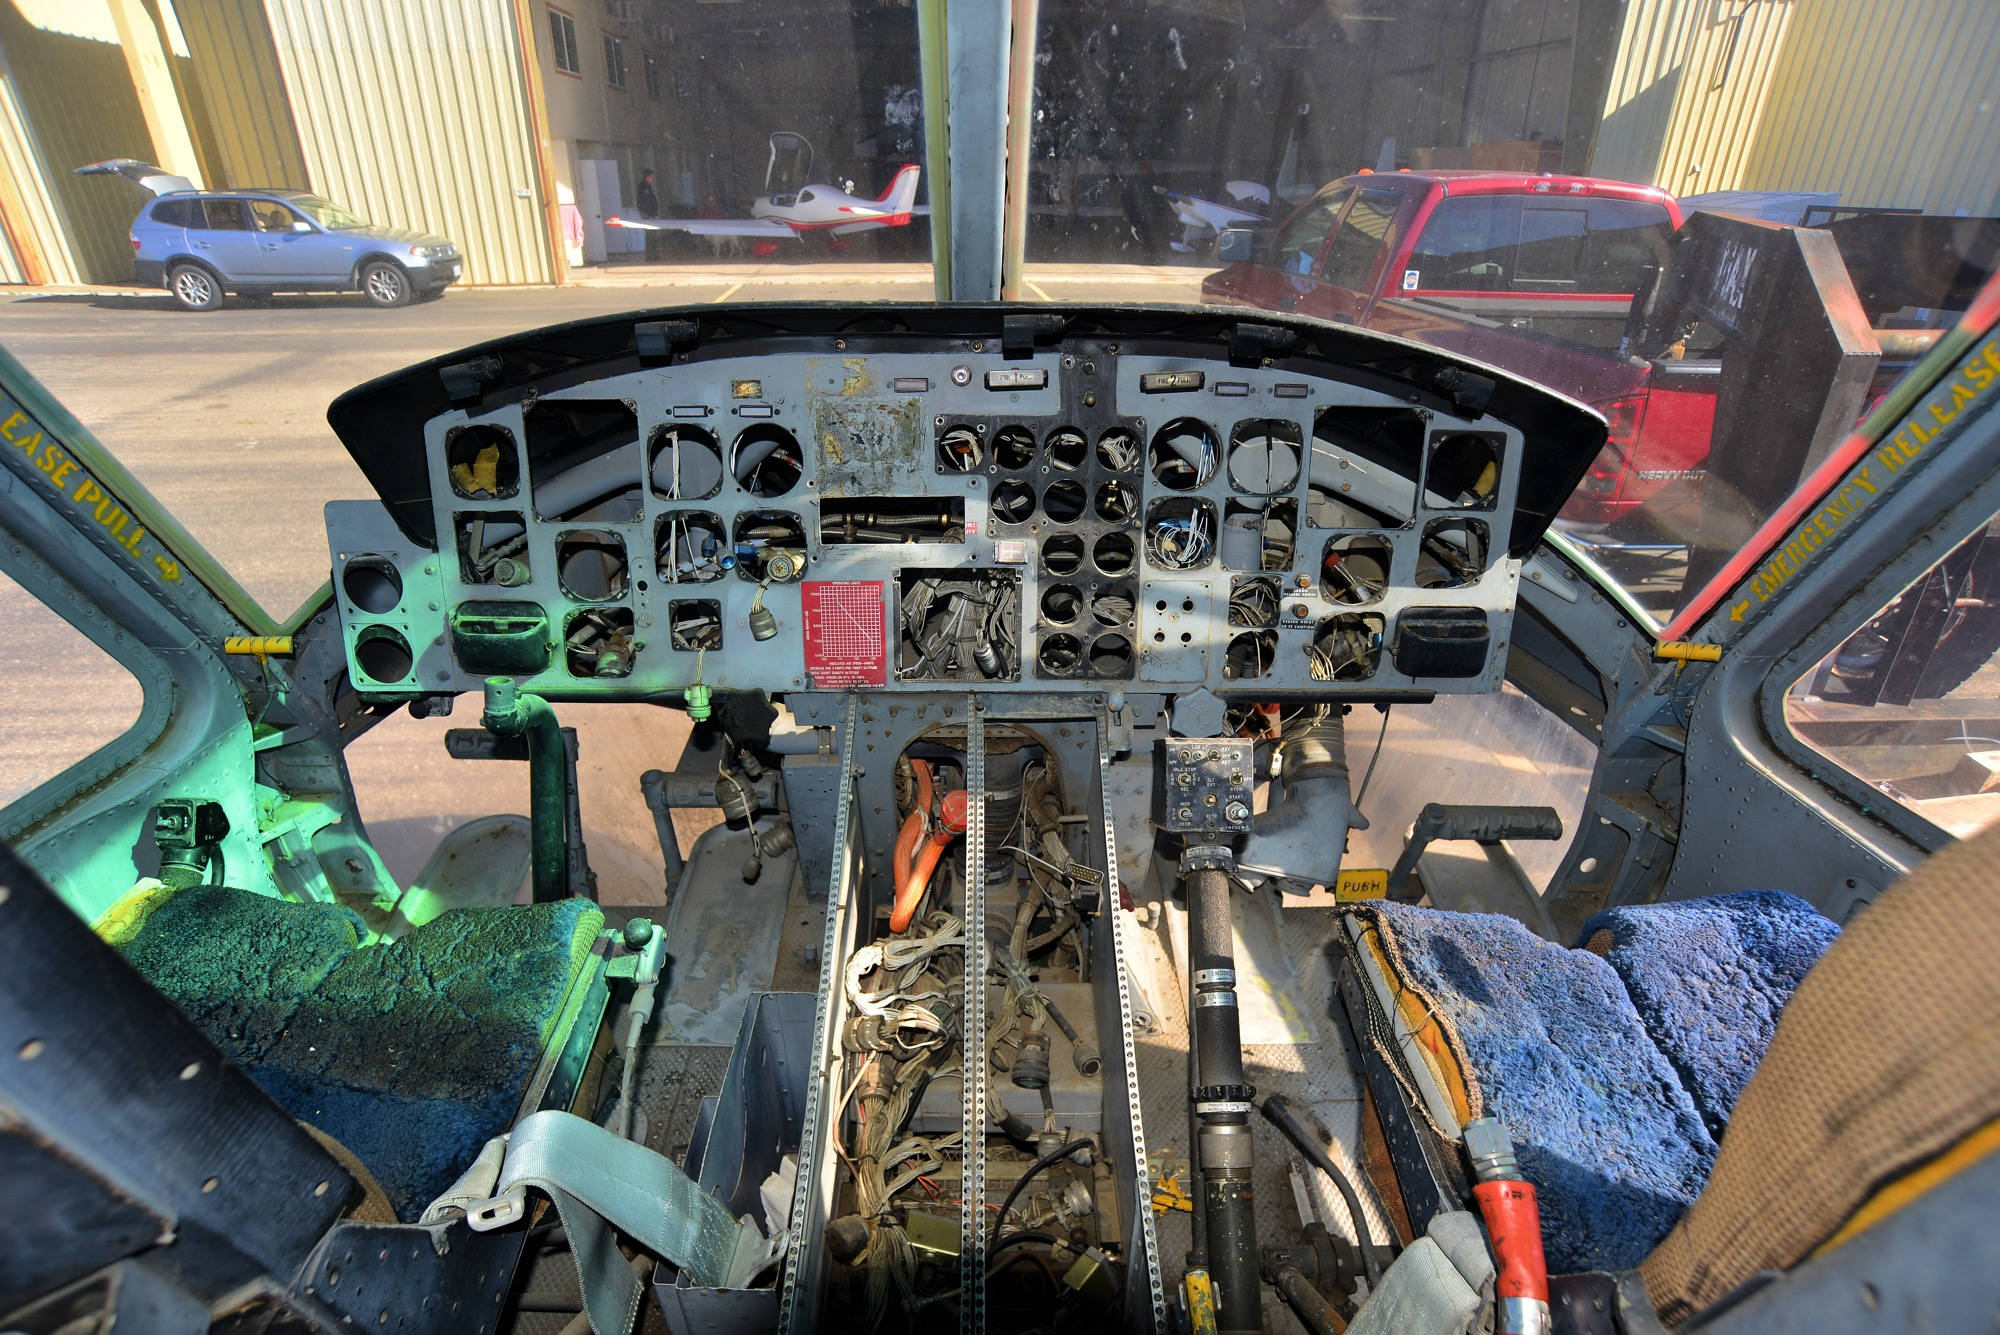 HH-1N instrument panel